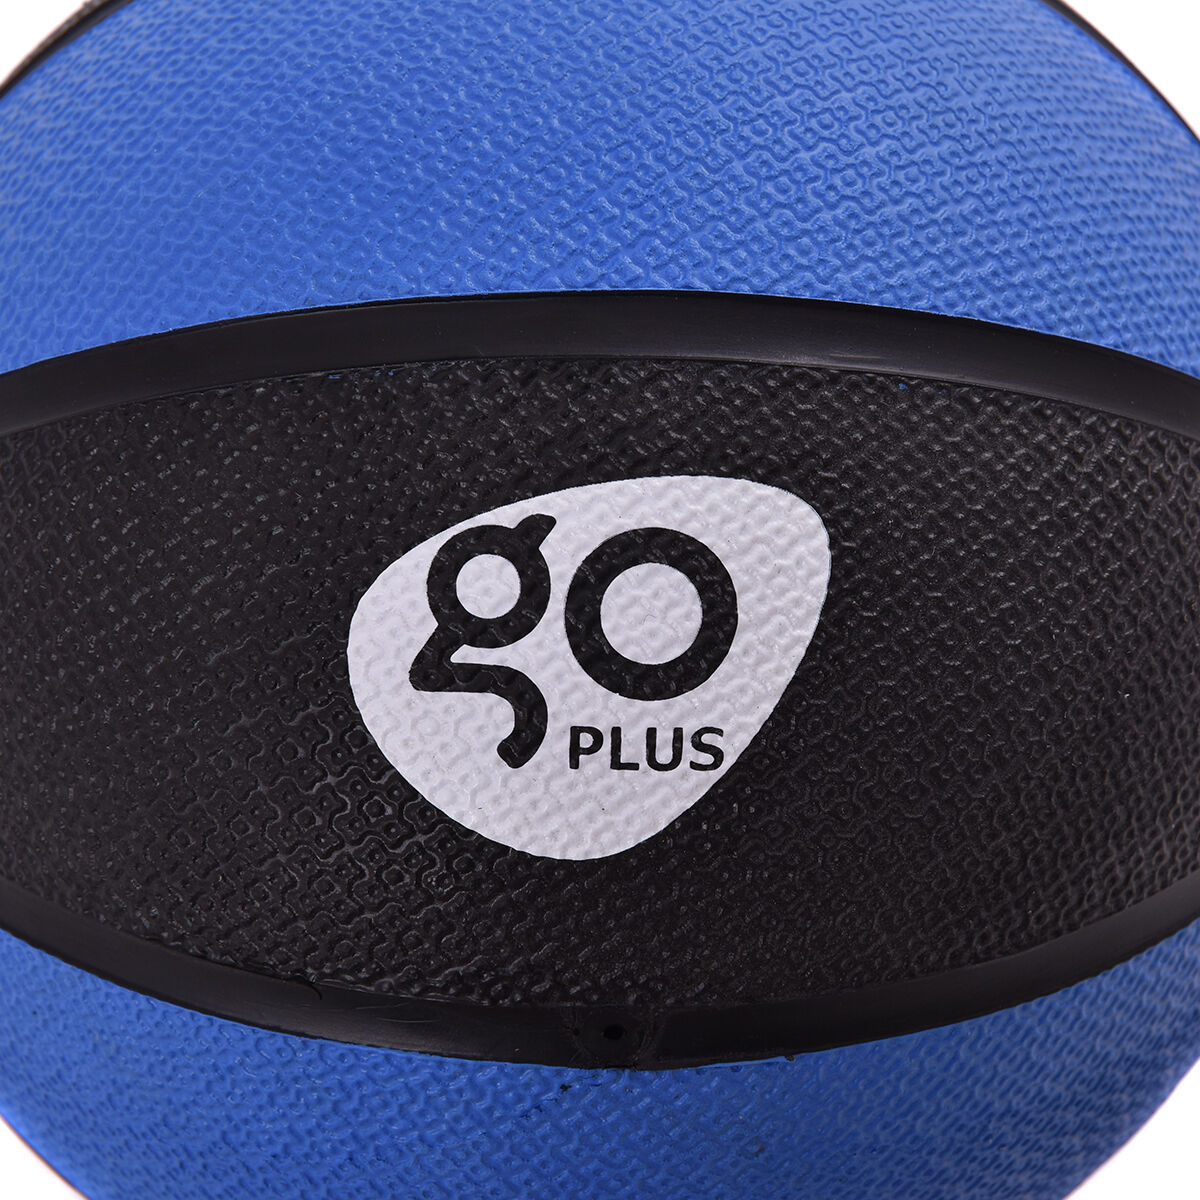 Fitness-Weighted-Medicine-Ball-Wall-Balance-Training-Muscle-Build-4-6-8-10-12lbs thumbnail 22